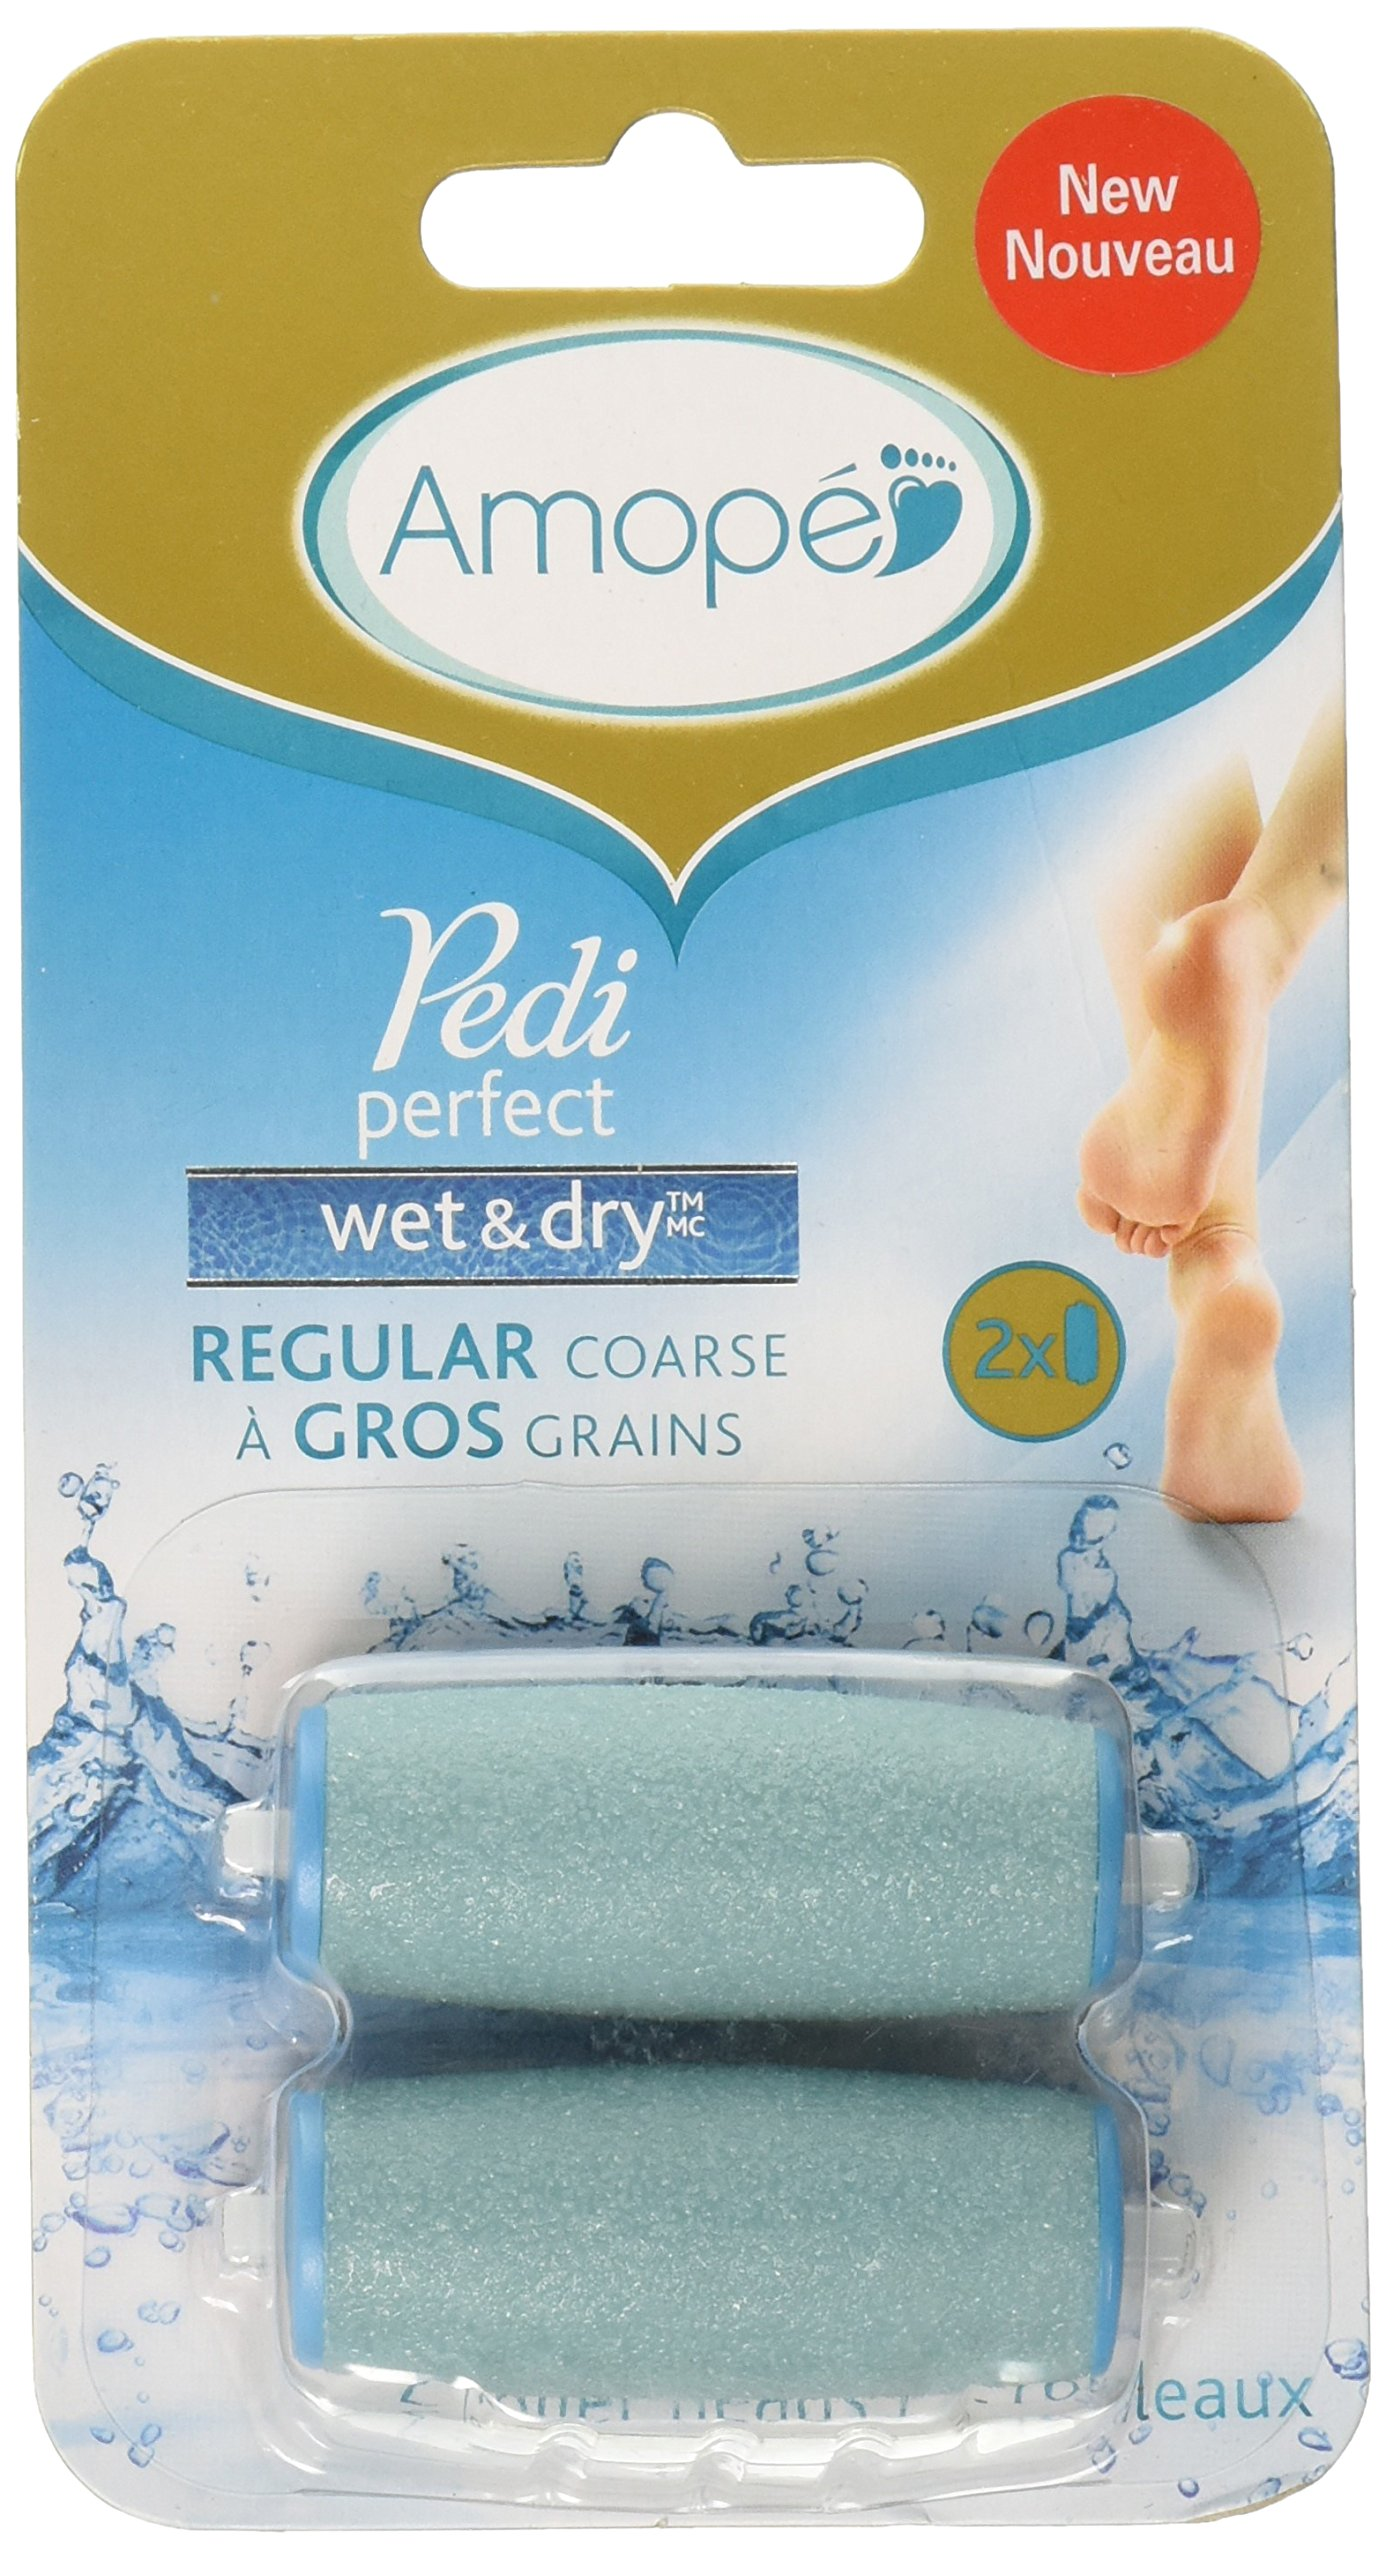 Amope Pedi Perfect Electronic Foot File Wet Dry Regular Coarse Refills, 2 Count